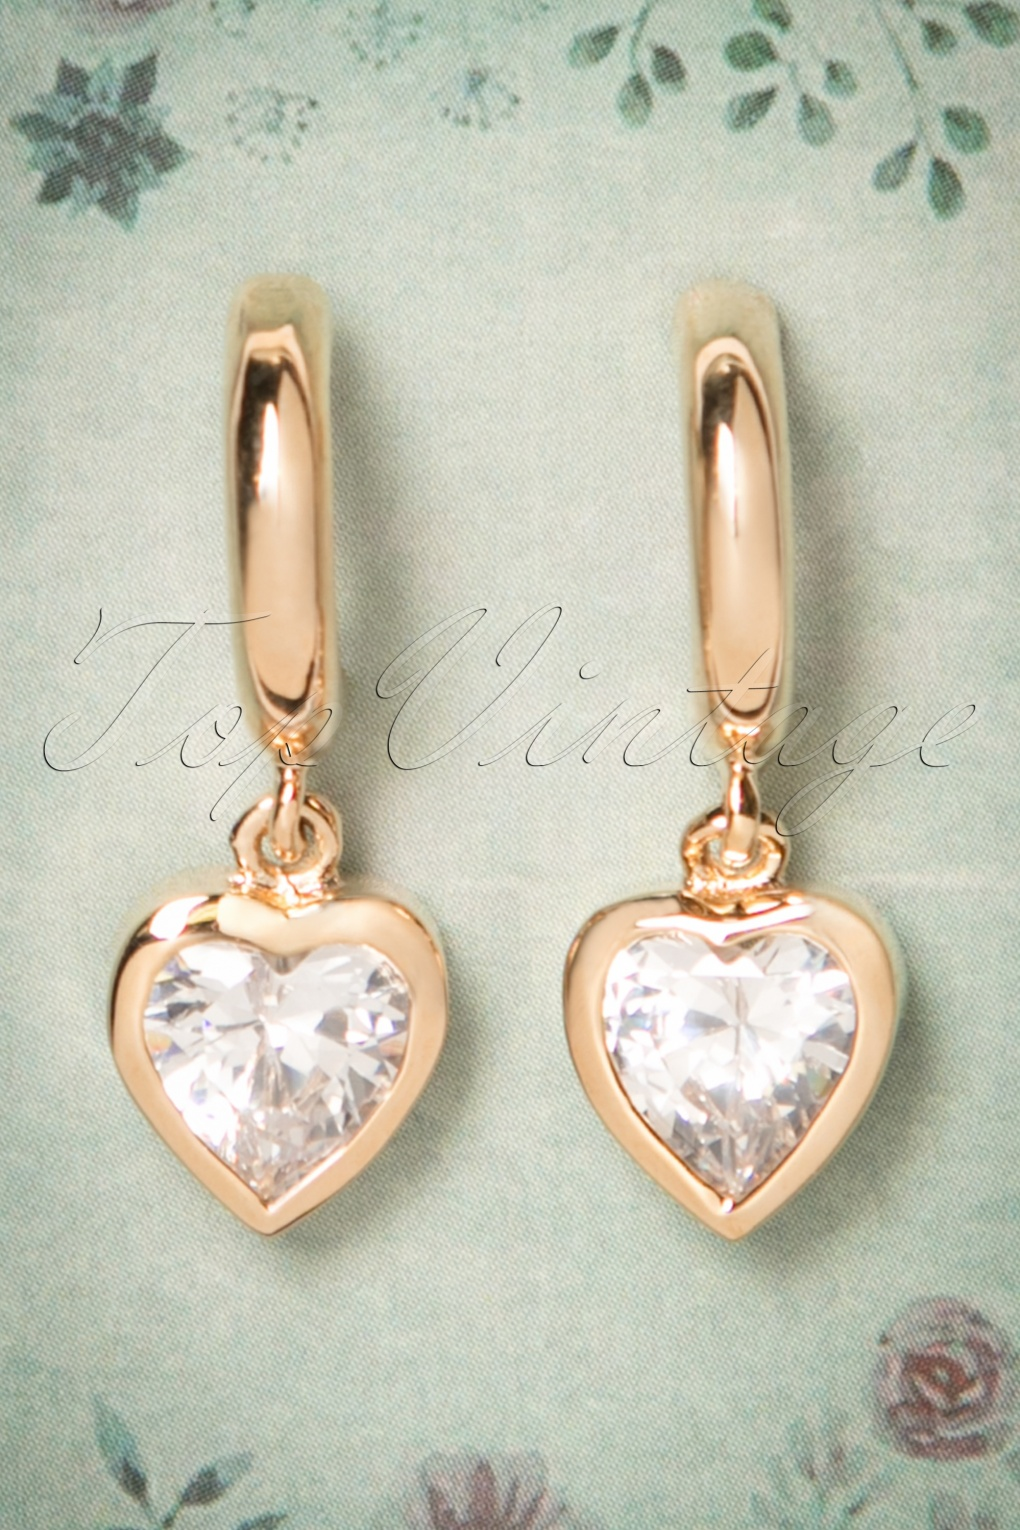 1920s Style Purses, Flapper Bags, Handbags 50s Diana Diamond Heart Earrings in Gold £12.37 AT vintagedancer.com